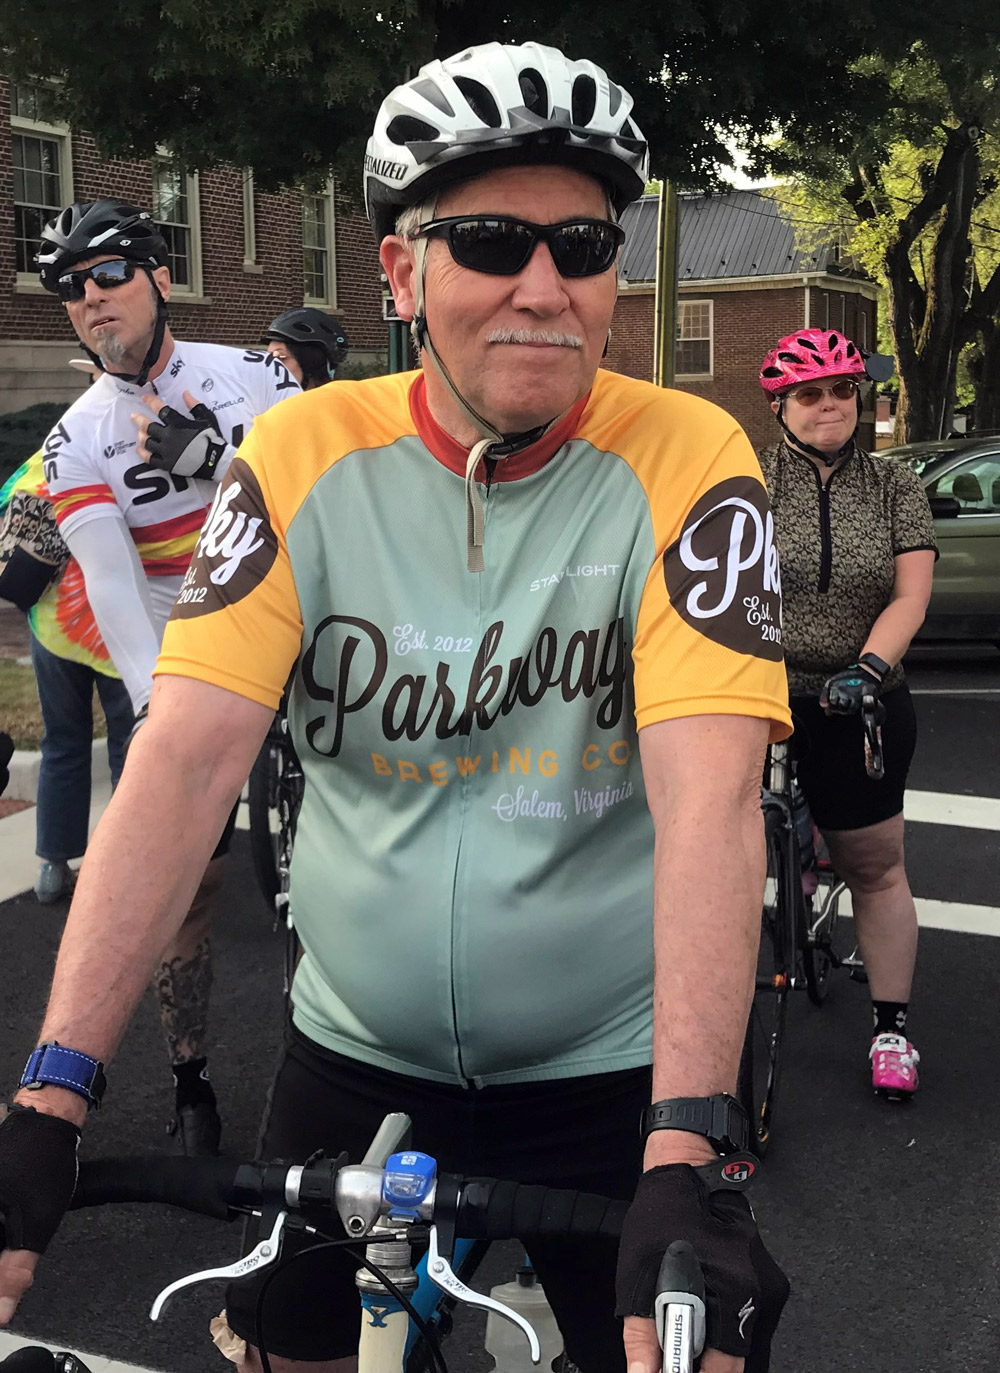 I saw a lot of our jerseys out. This Parkway Brewing top is a Starlight favorite